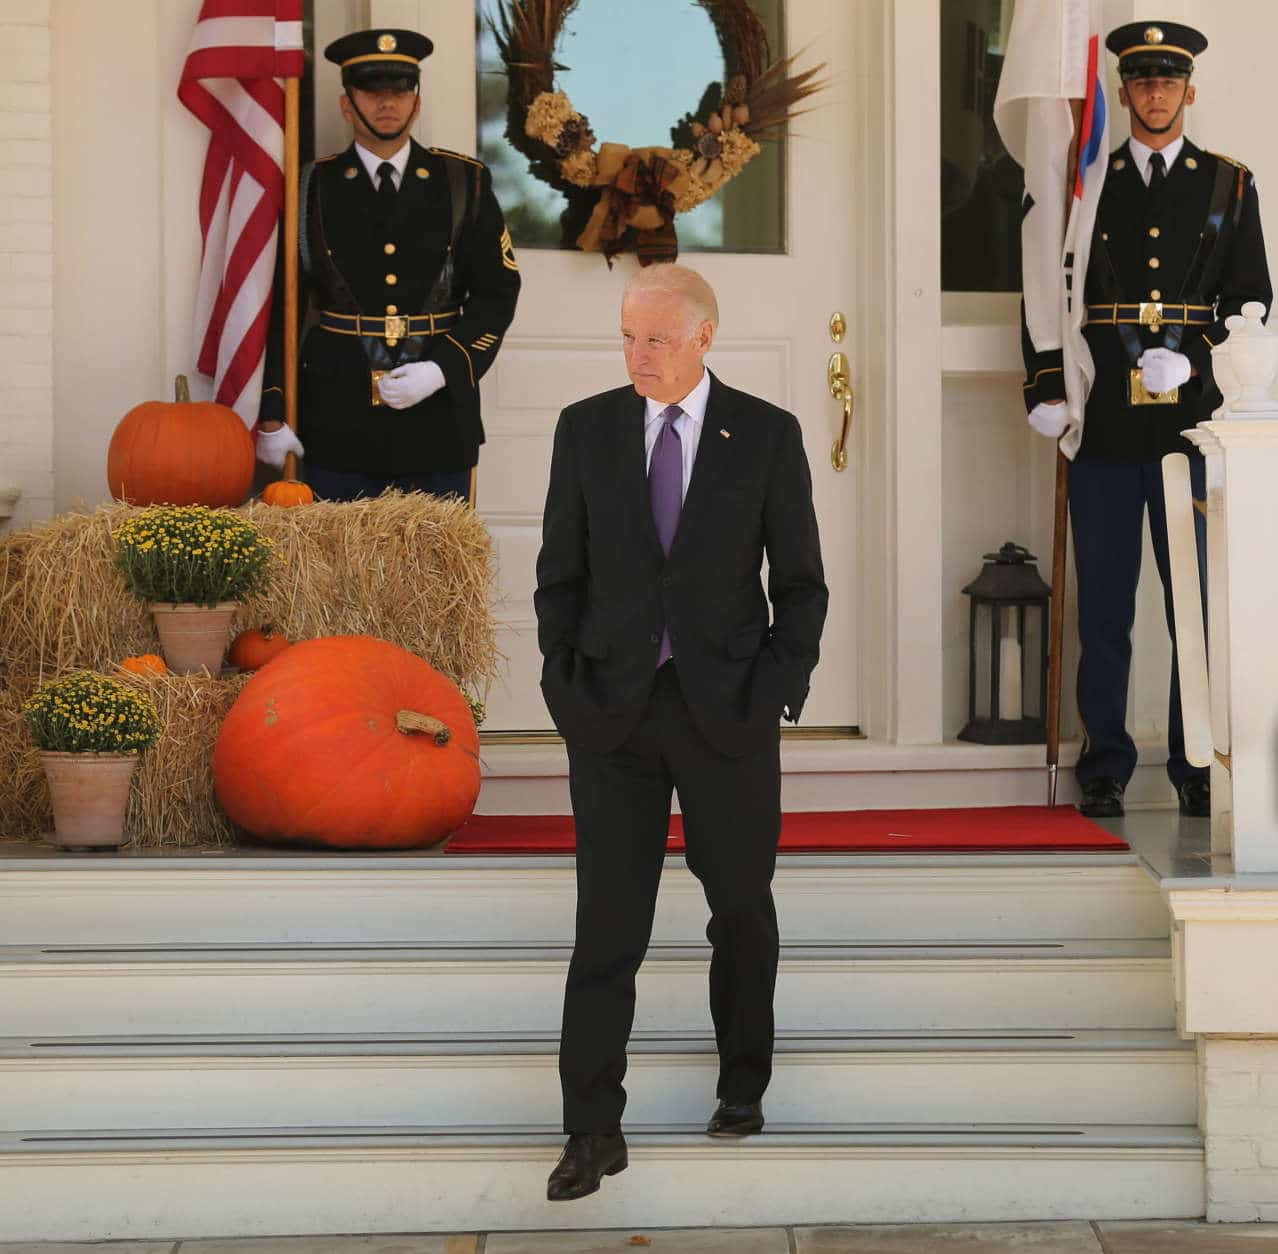 WASHINGTON, DC - OCTOBER 15:  U.S. Vice President Joe Biden steps onto the front porch of his residence before welcoming President Park Geun-hye of South Korea to the Naval Observatory for lunch October 15, 2015 in Washington, DC. Park, South Korea's first female president, met with Biden and will visit the White House Friday for a meeting with President Barack Obama, where the two leaders are expected to talk about the denuclearization of the Korean Peninsula.  (Photo by Chip Somodevilla/Getty Images)